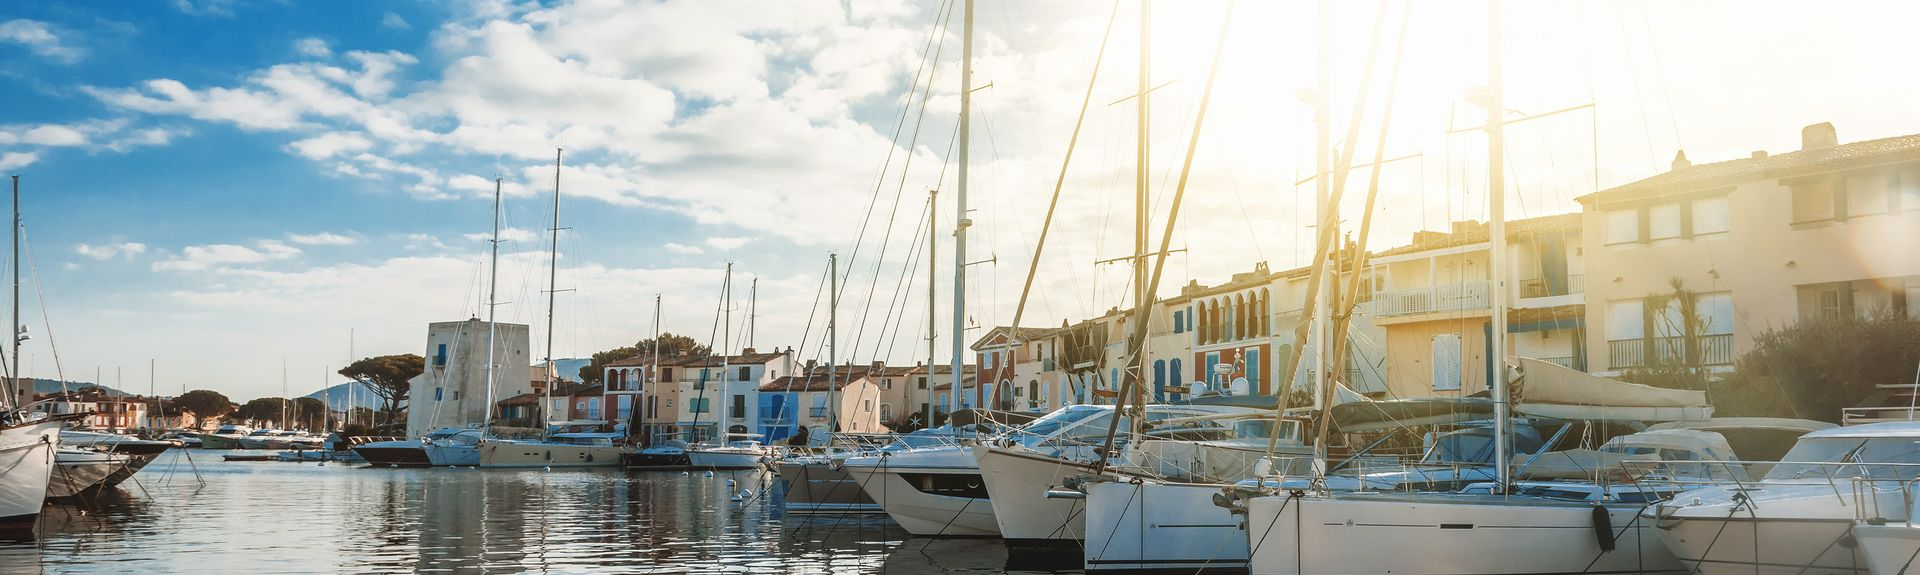 Port Grimaud, Grimaud, Var, France